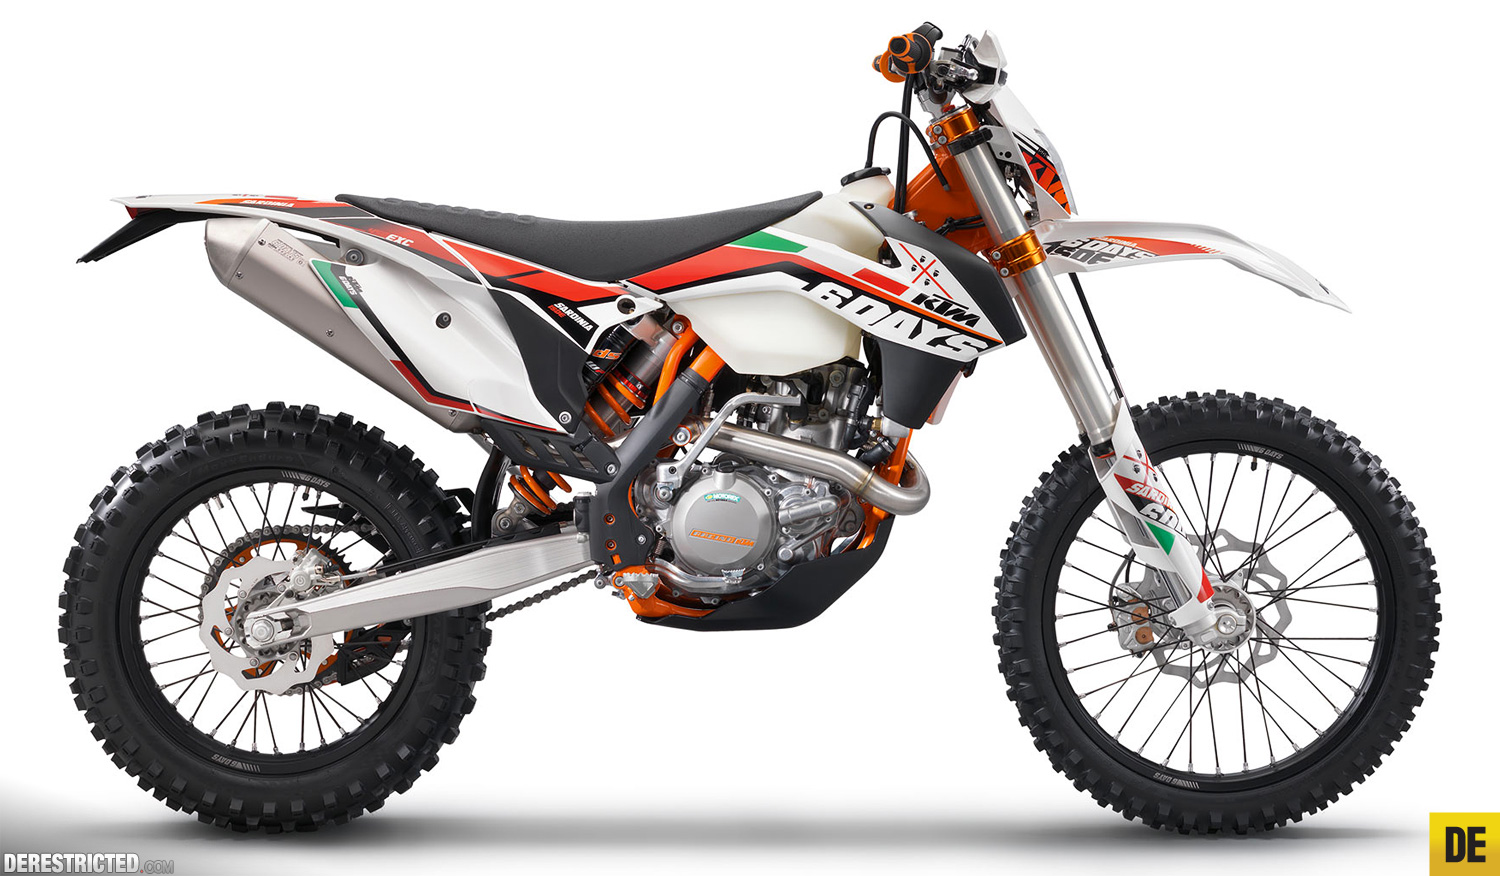 ktm 450 exc sixdays 2014 sardinia derestricted. Black Bedroom Furniture Sets. Home Design Ideas